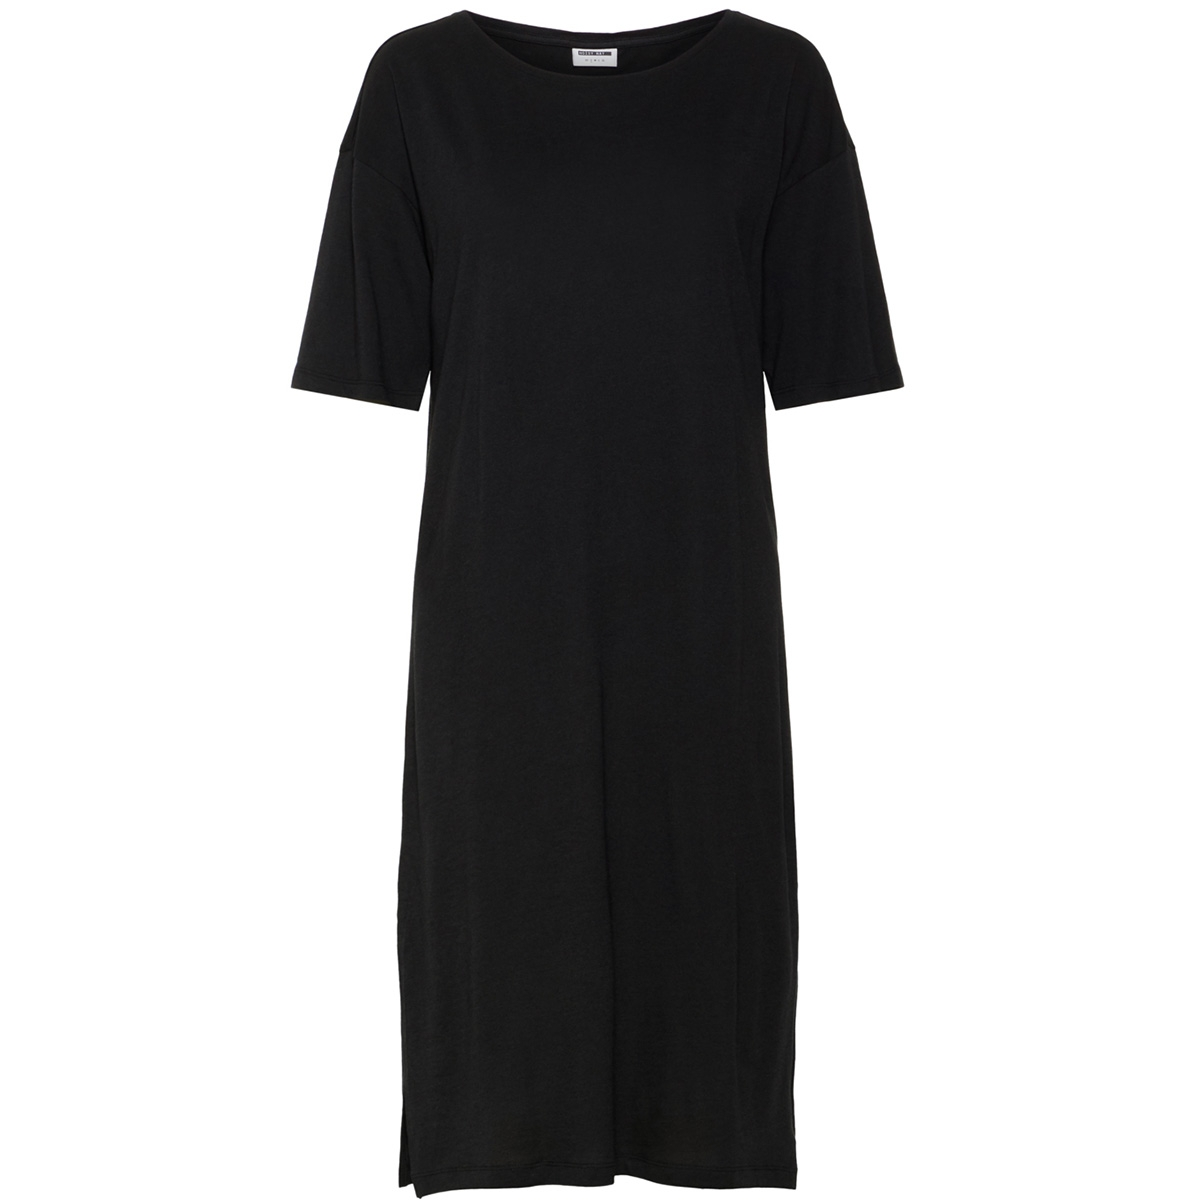 nmmayden 2/4 dress noos 27005758 noisy may jurk black/plain